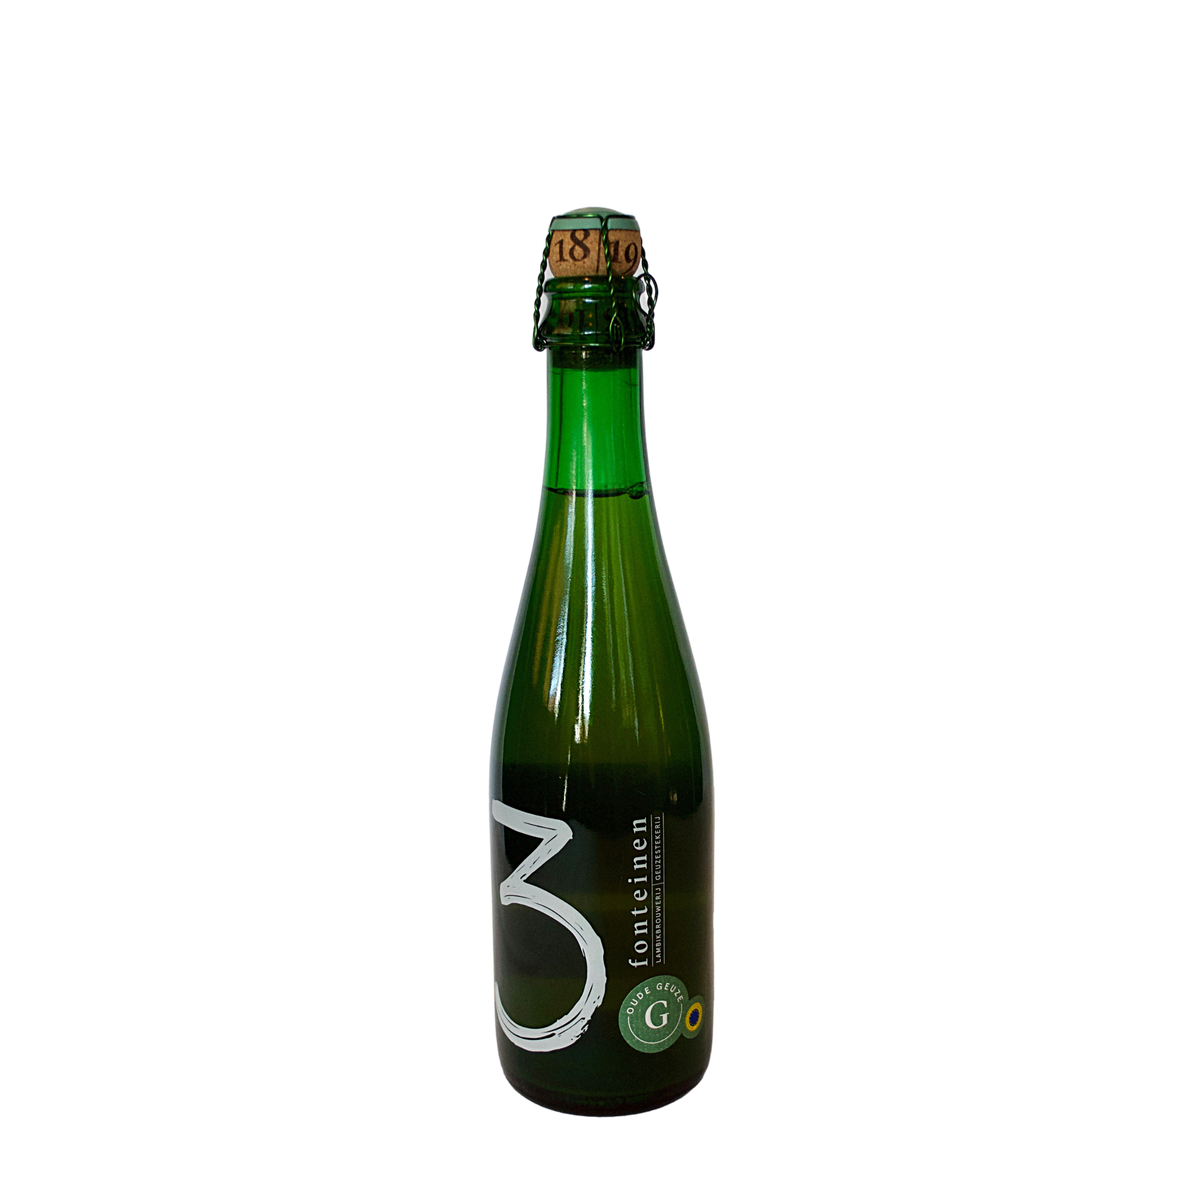 3 Fonteinen Oude Gueuze 2019 375ml Bottle (Gueuze) (Limit One Per Order)